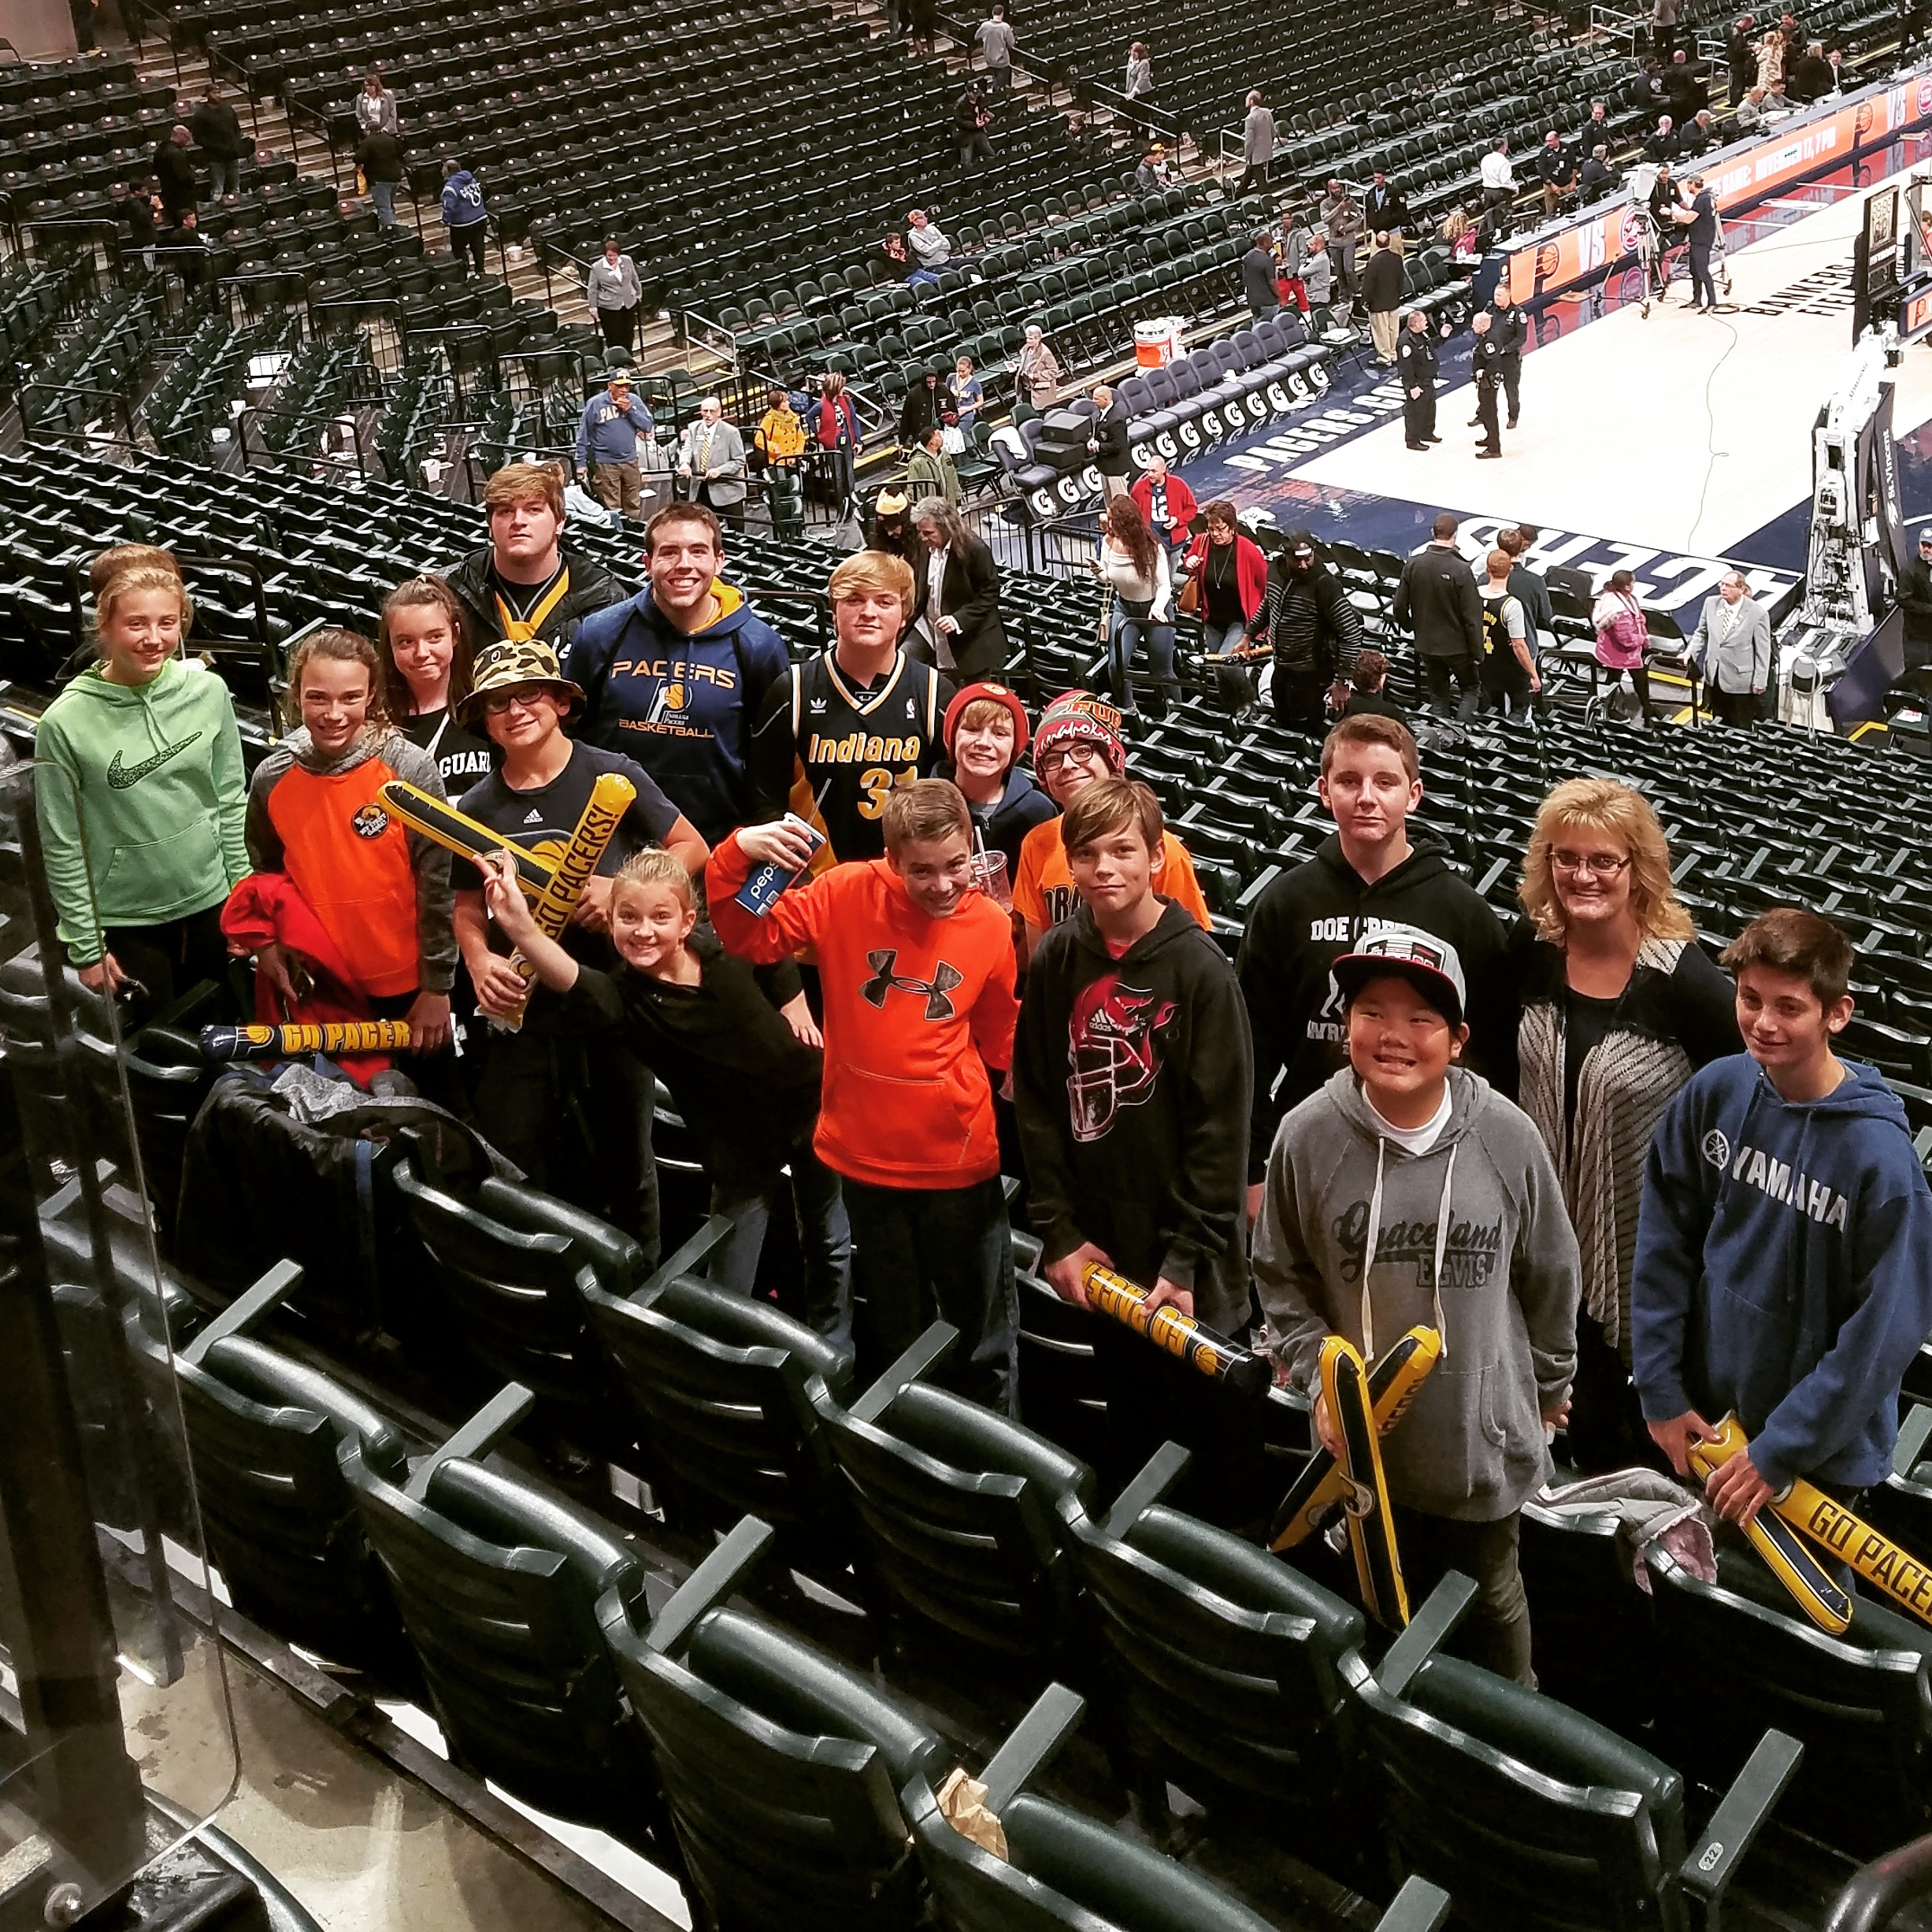 Connor & Robin attending a Pacer's game with Rooted Youth Group!